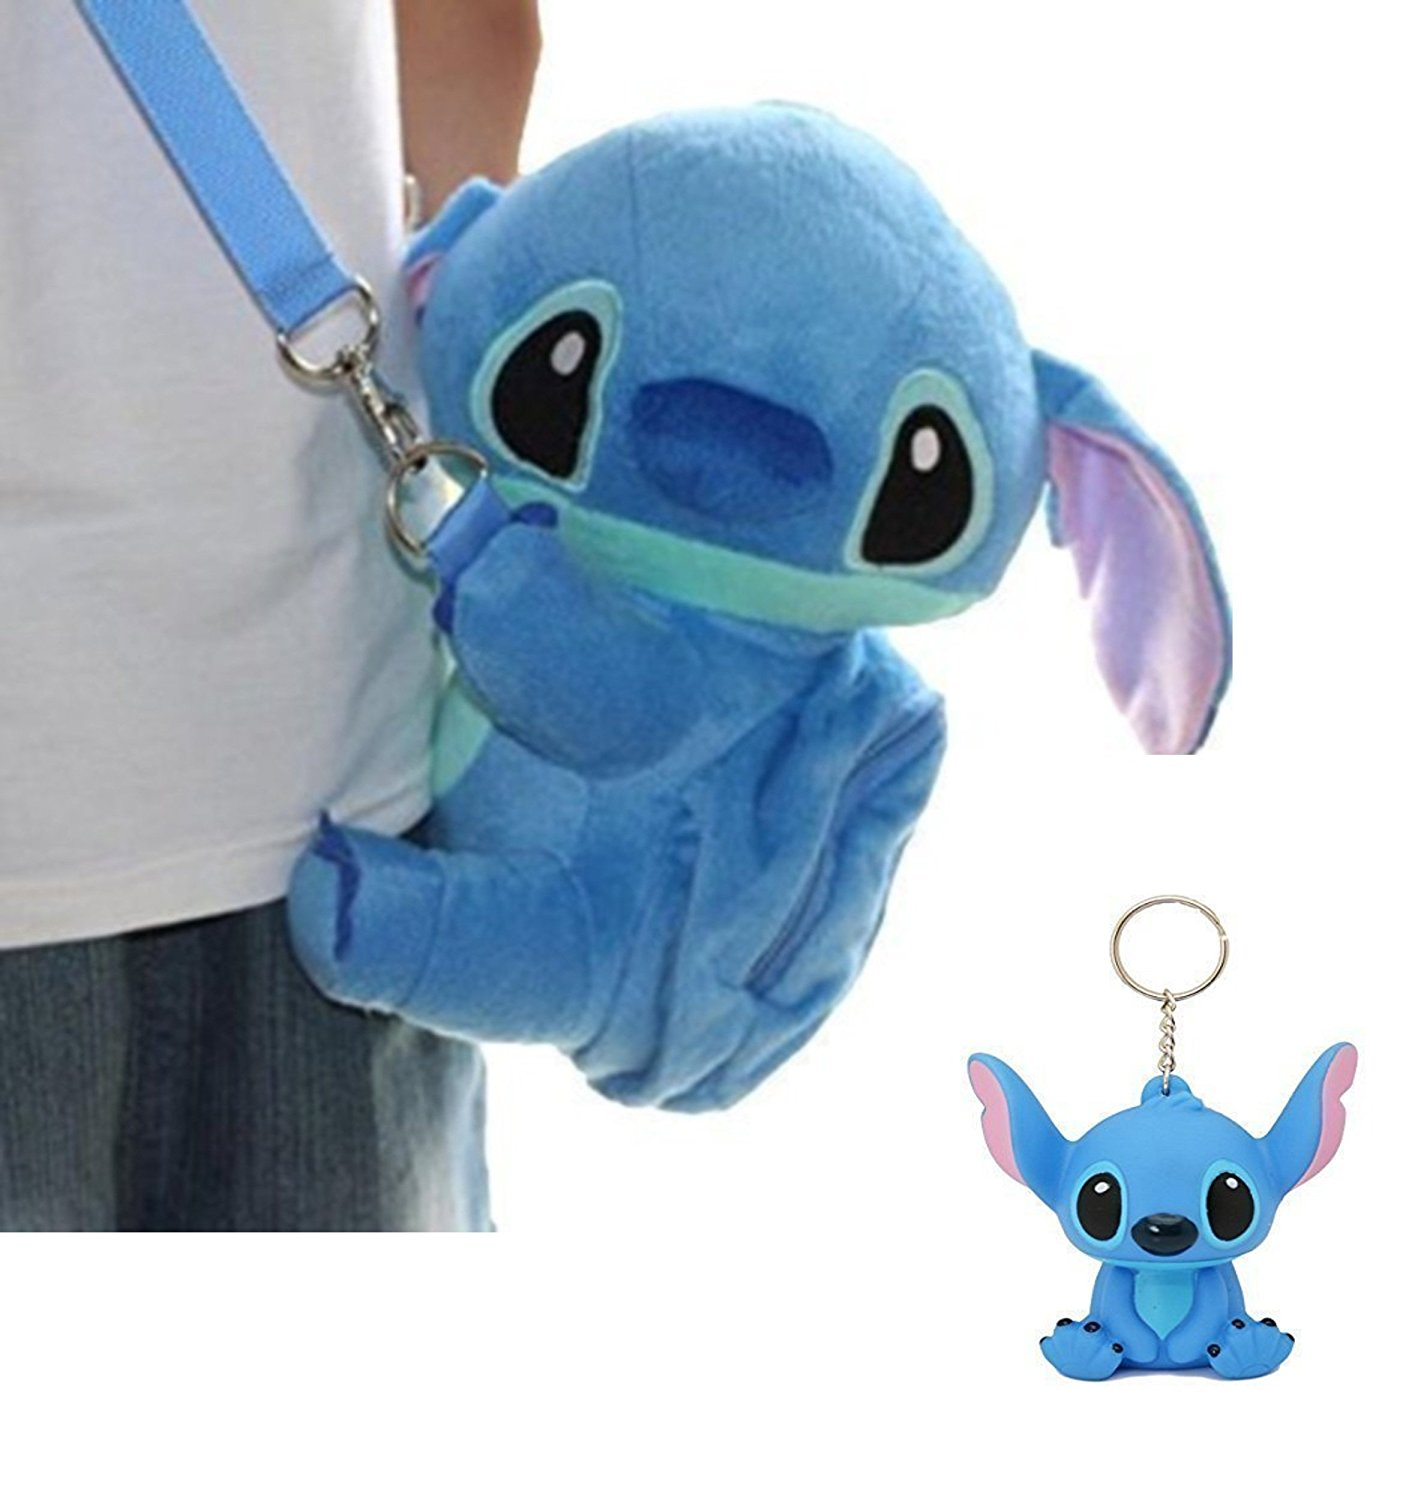 Disney Stitch Gift Set . Soft Plush Crossbody/Shoulder Mini Bag With Mini Pocket + Stitch 3D Keychain.